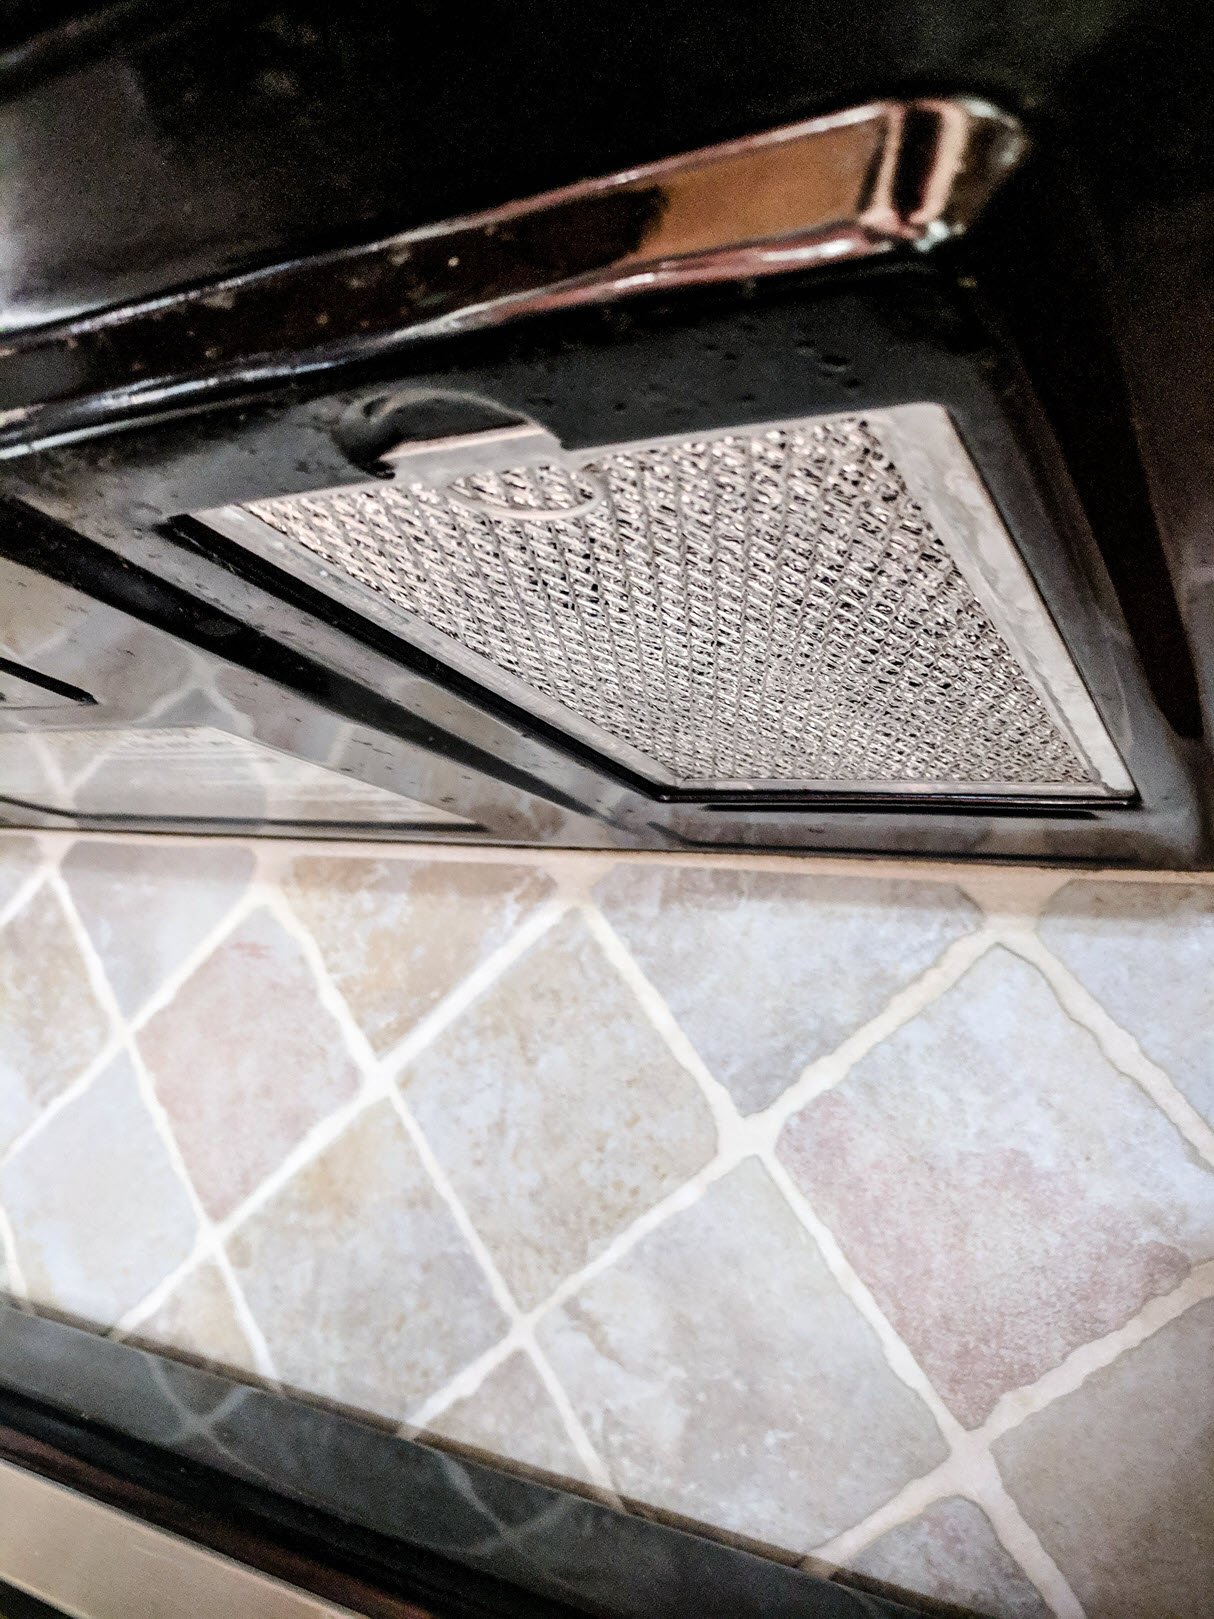 Clean Oven Vents Easy Kitchen Hack